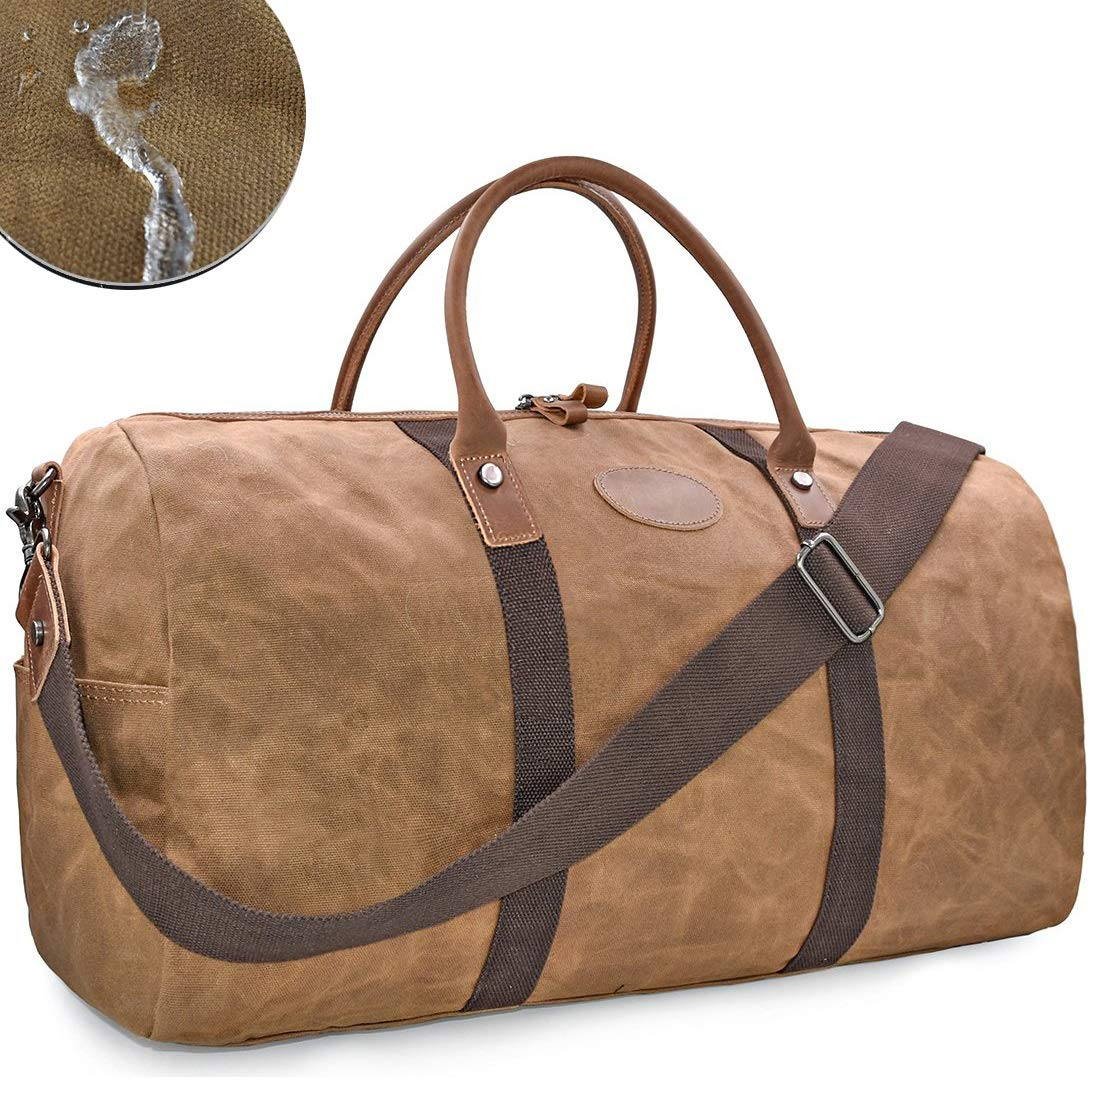 VOVIJ Waxed Canvas Waterproof Sports Gym Bag,with Shoes Compartment & Wet Pocket,45L (Color : Brown) by VOVIJ